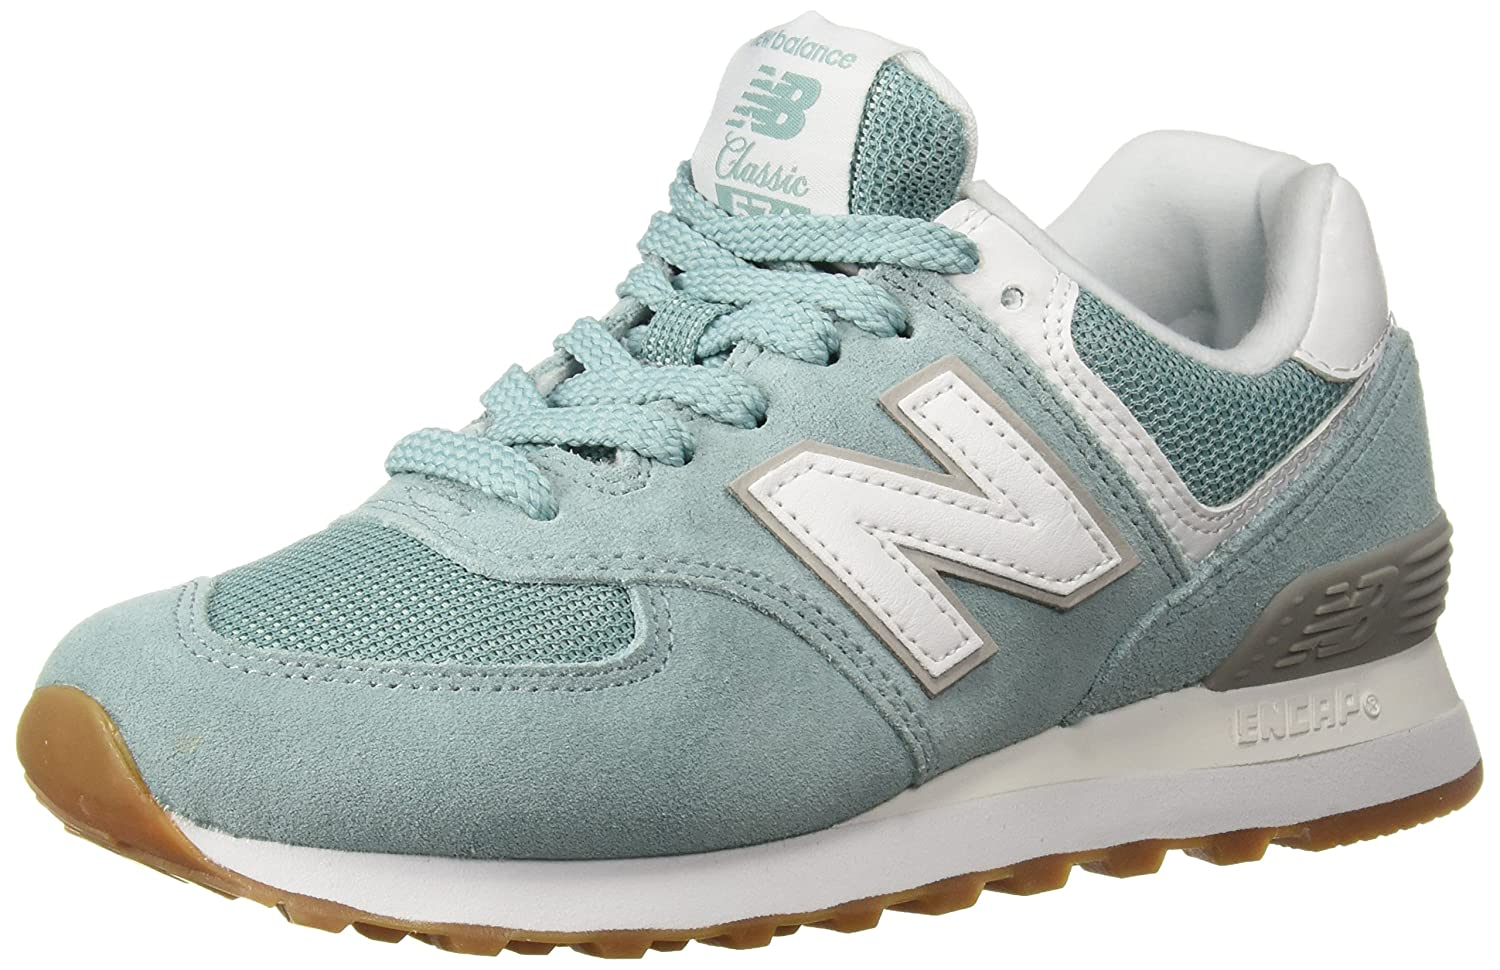 New Balance Women's 574v2 Sneaker B0751S2G2Y 6 D US|Storm Blue/White